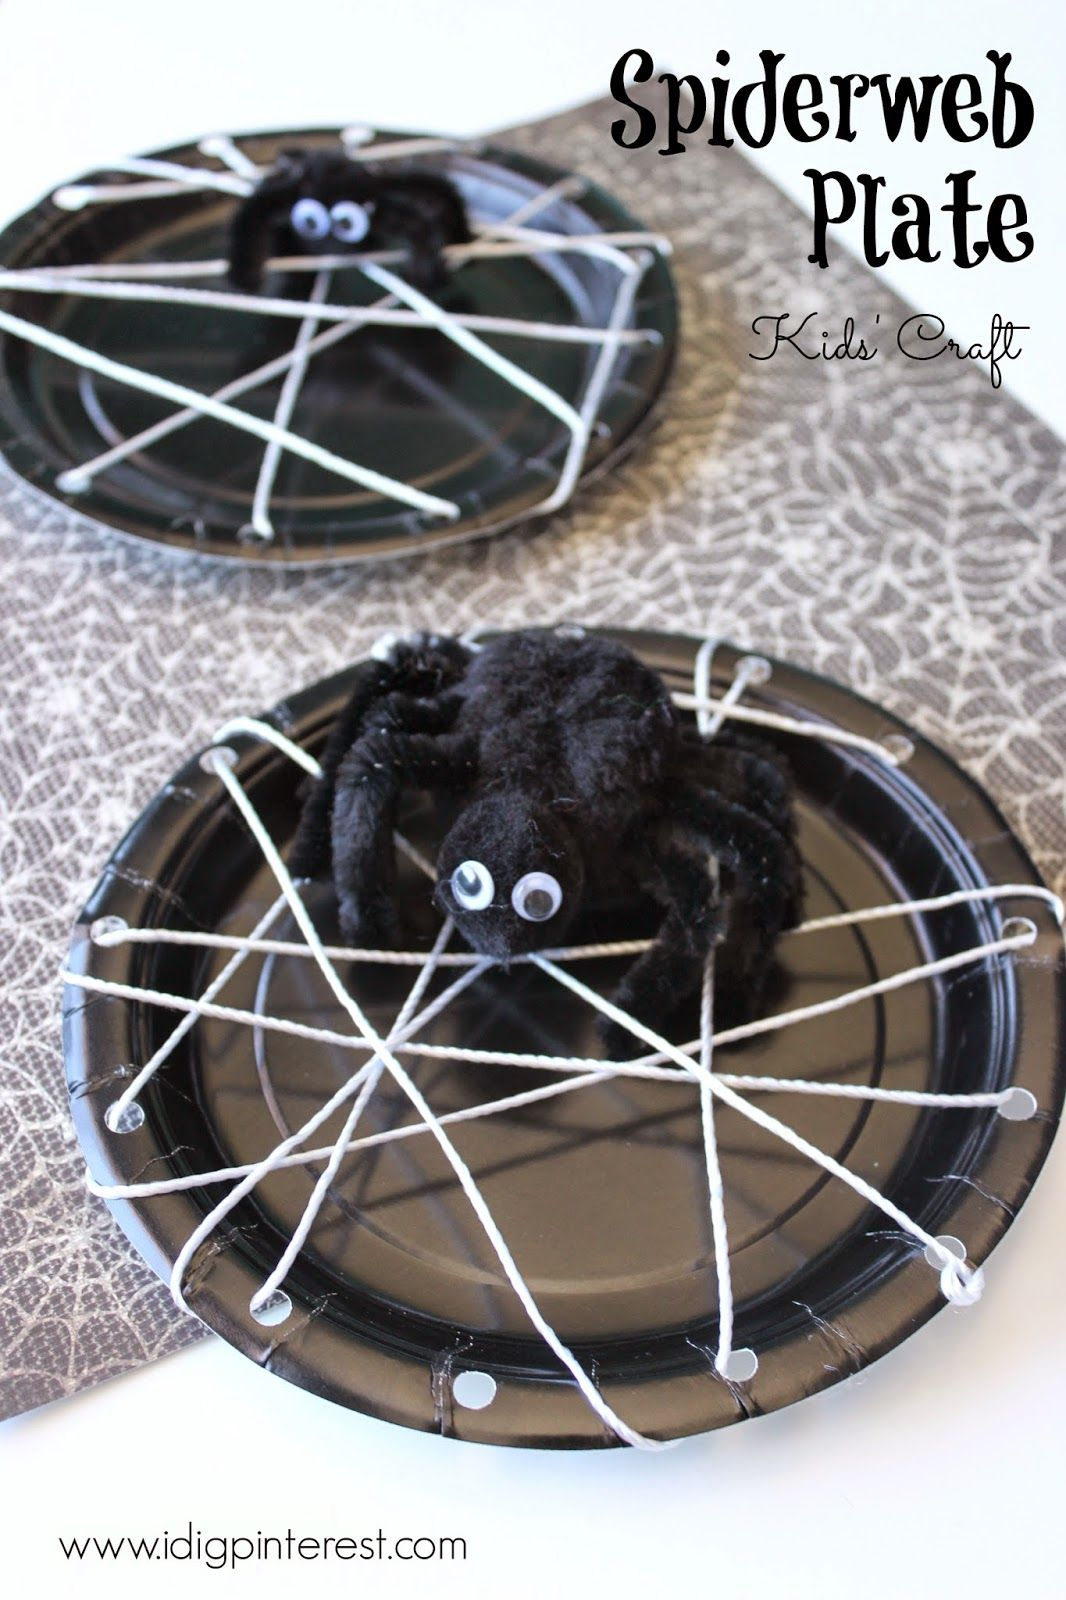 I Dig Pinterest: Spiderweb Plate Kids' Craft   !!!ALL THINGS ...